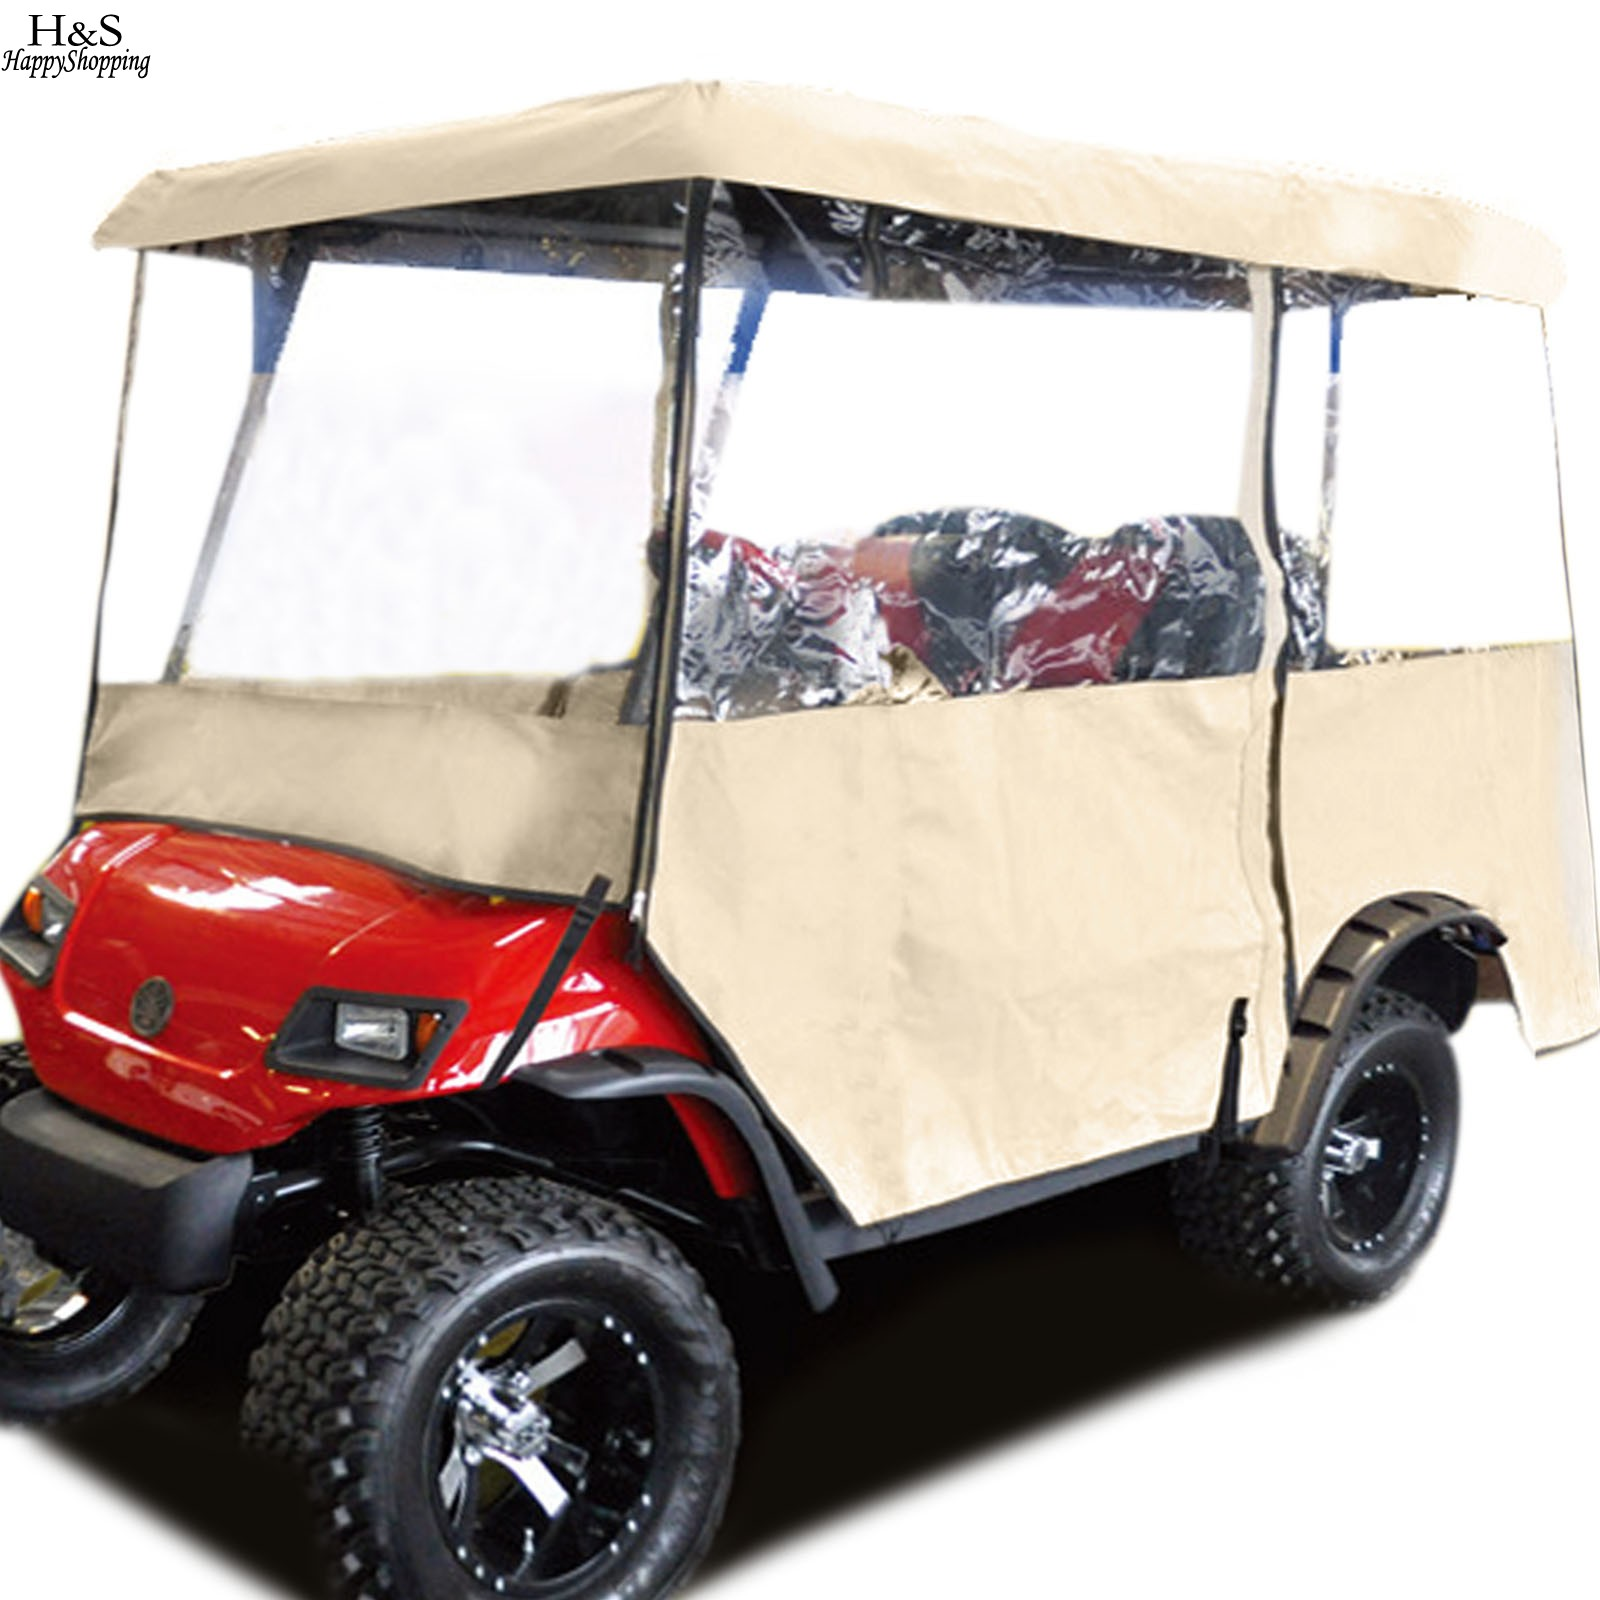 2016 ANCHEER Car Cover for 2 Person Driving Golf Cart Club Car Rain Roof Cover Enclosure with Carry Bag drop shipping(China (Mainland))